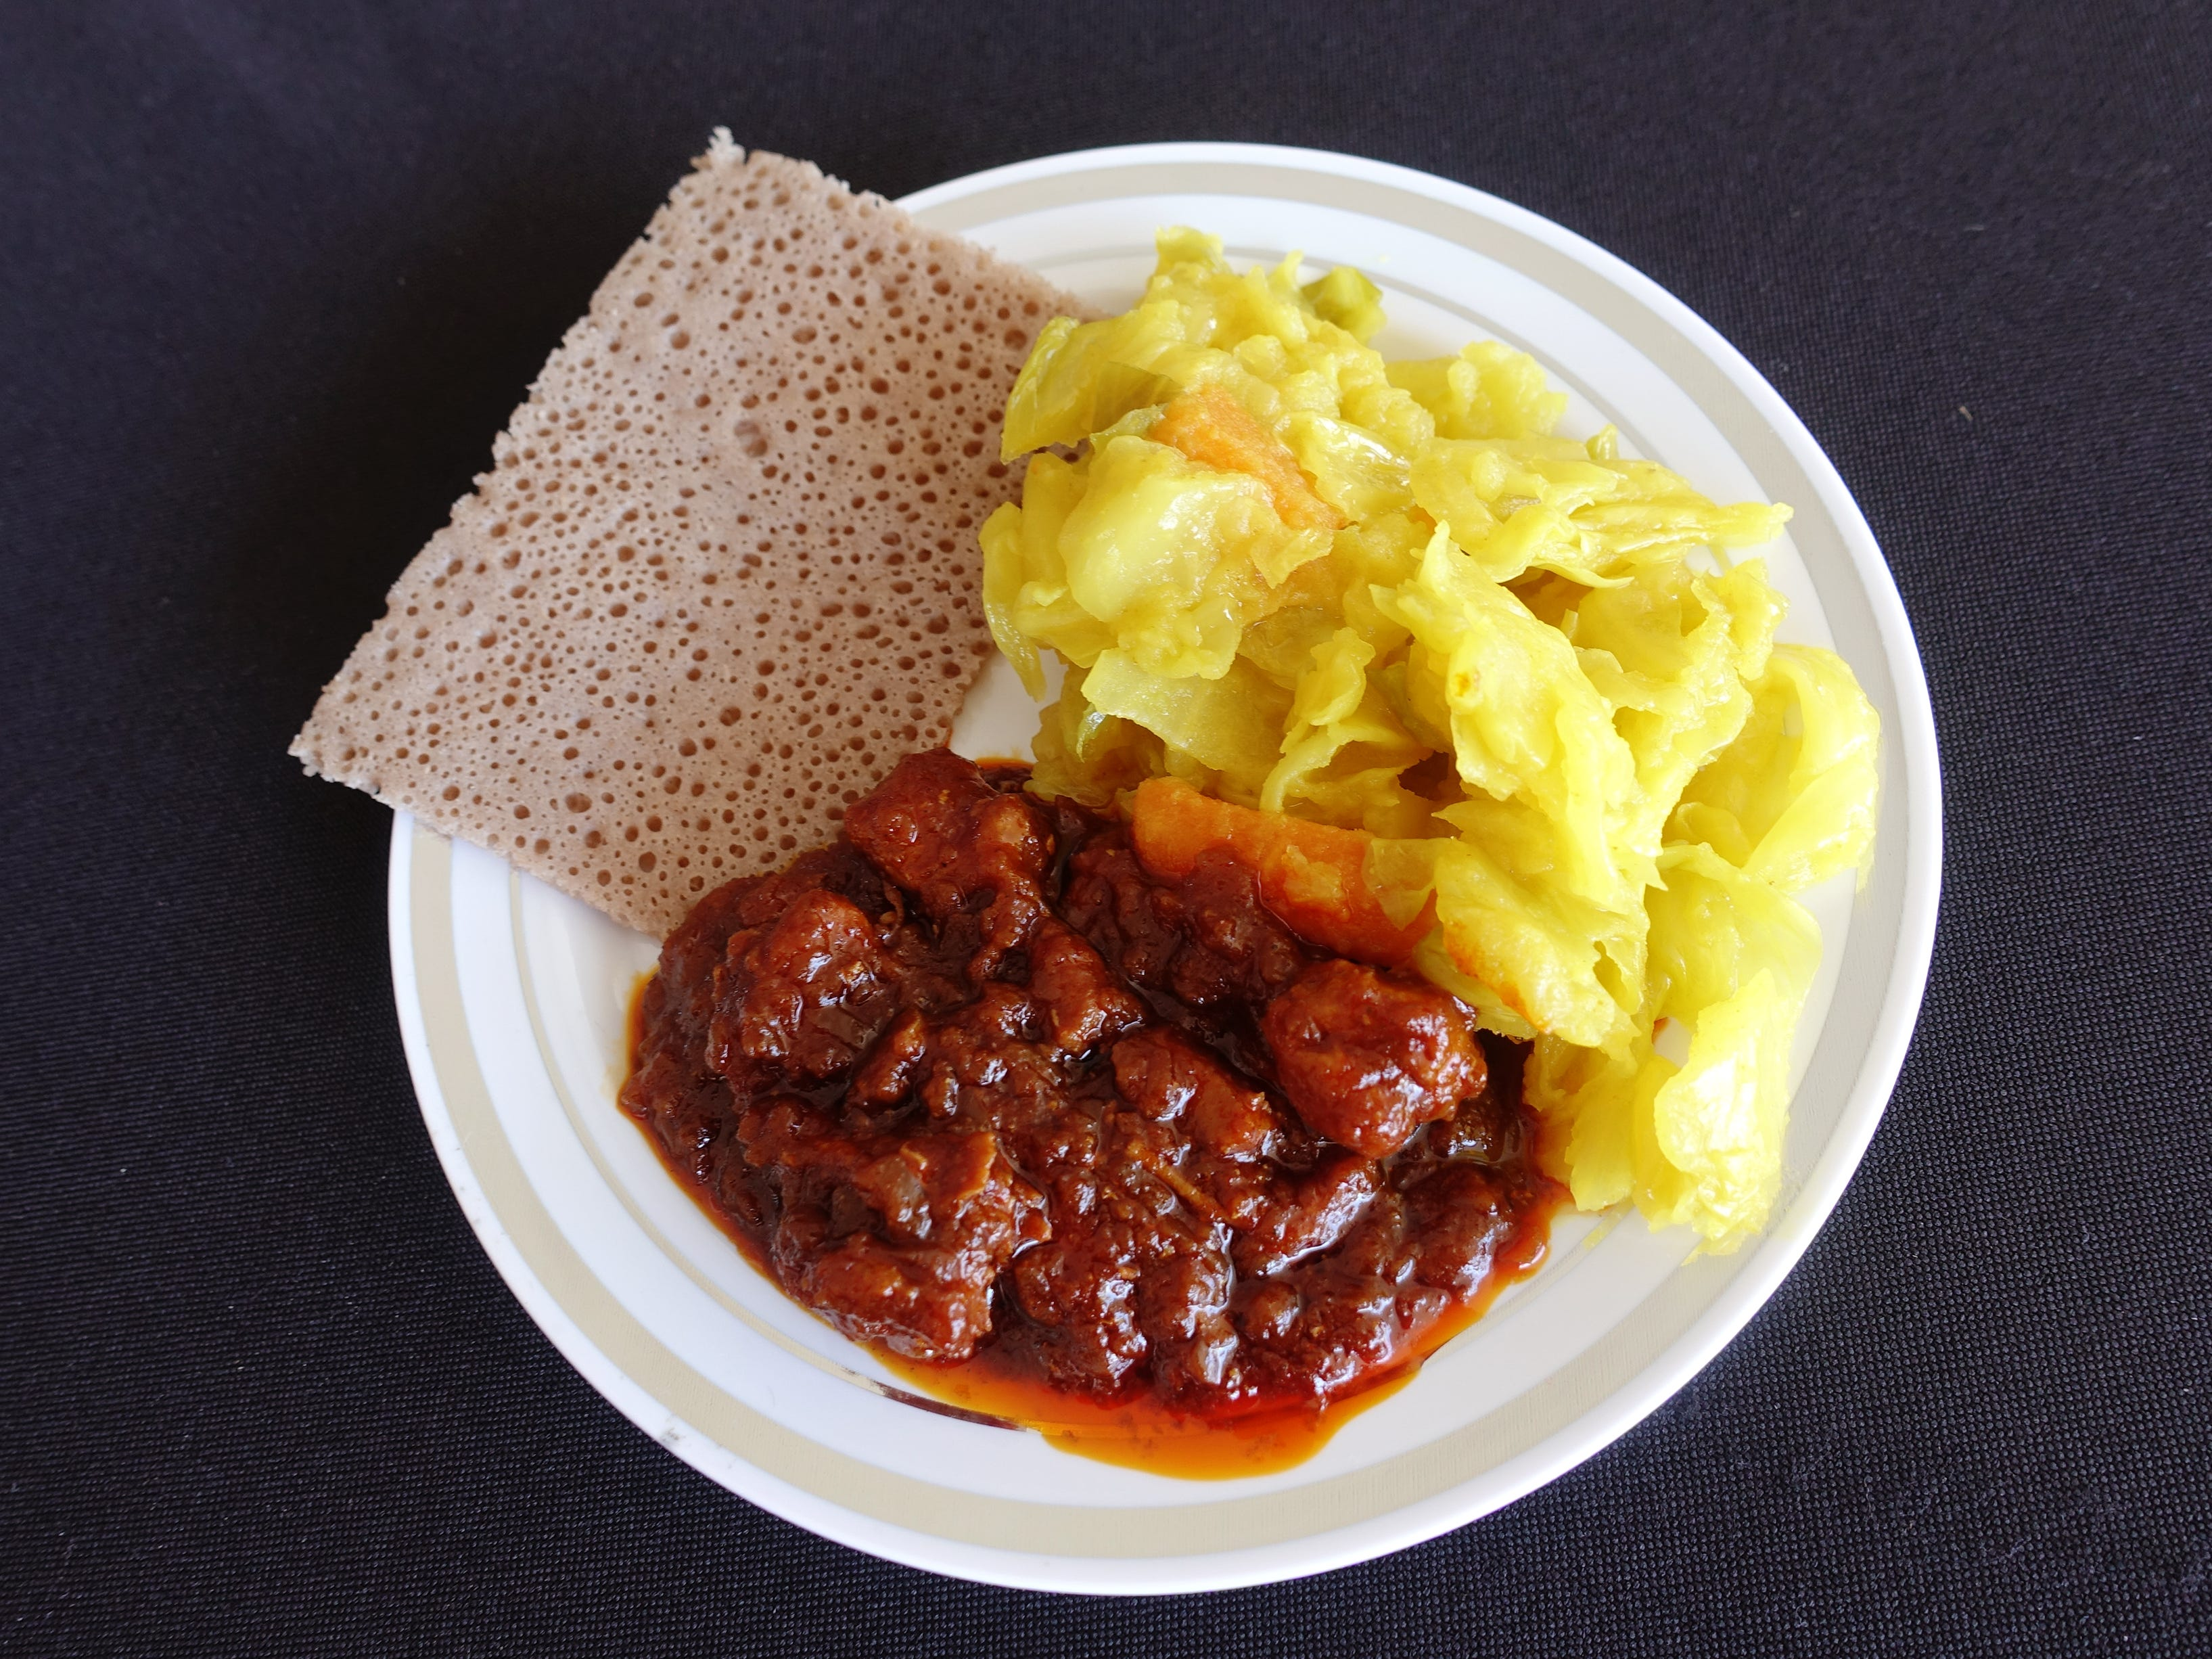 Doro wat (spicy chicken stew, bottom) and tikil gomen (cabbage with carrots and potatoes, right) with injera (Ethiopian bread, left) from Cafe Lalibela at azcentral Wine & Food Experience 2018 at WestWorld of Scottsdale, Saturday, Nov. 3, 2018.